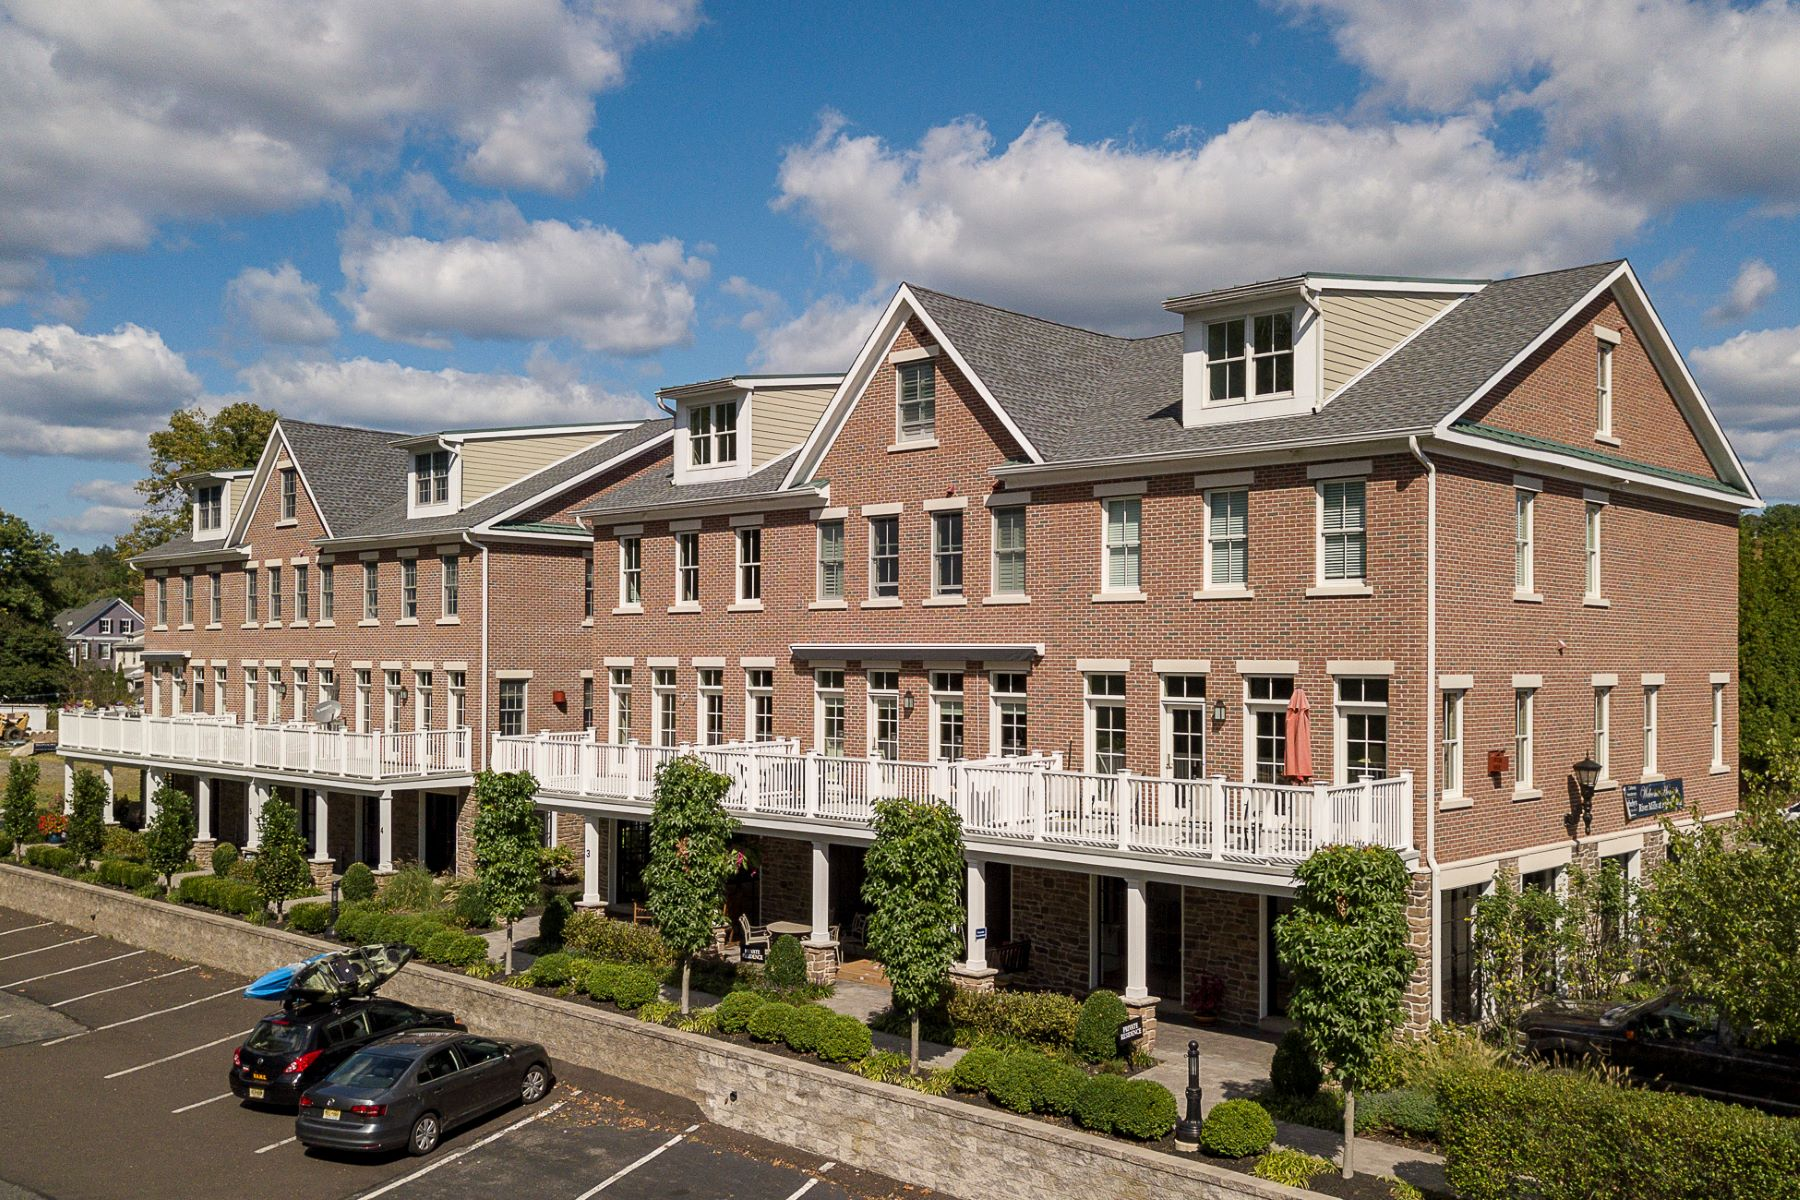 townhouses للـ Sale في Outstanding Value in River Mills At Frenchtown 1 River Mills Drive, Frenchtown, New Jersey 08825 United States